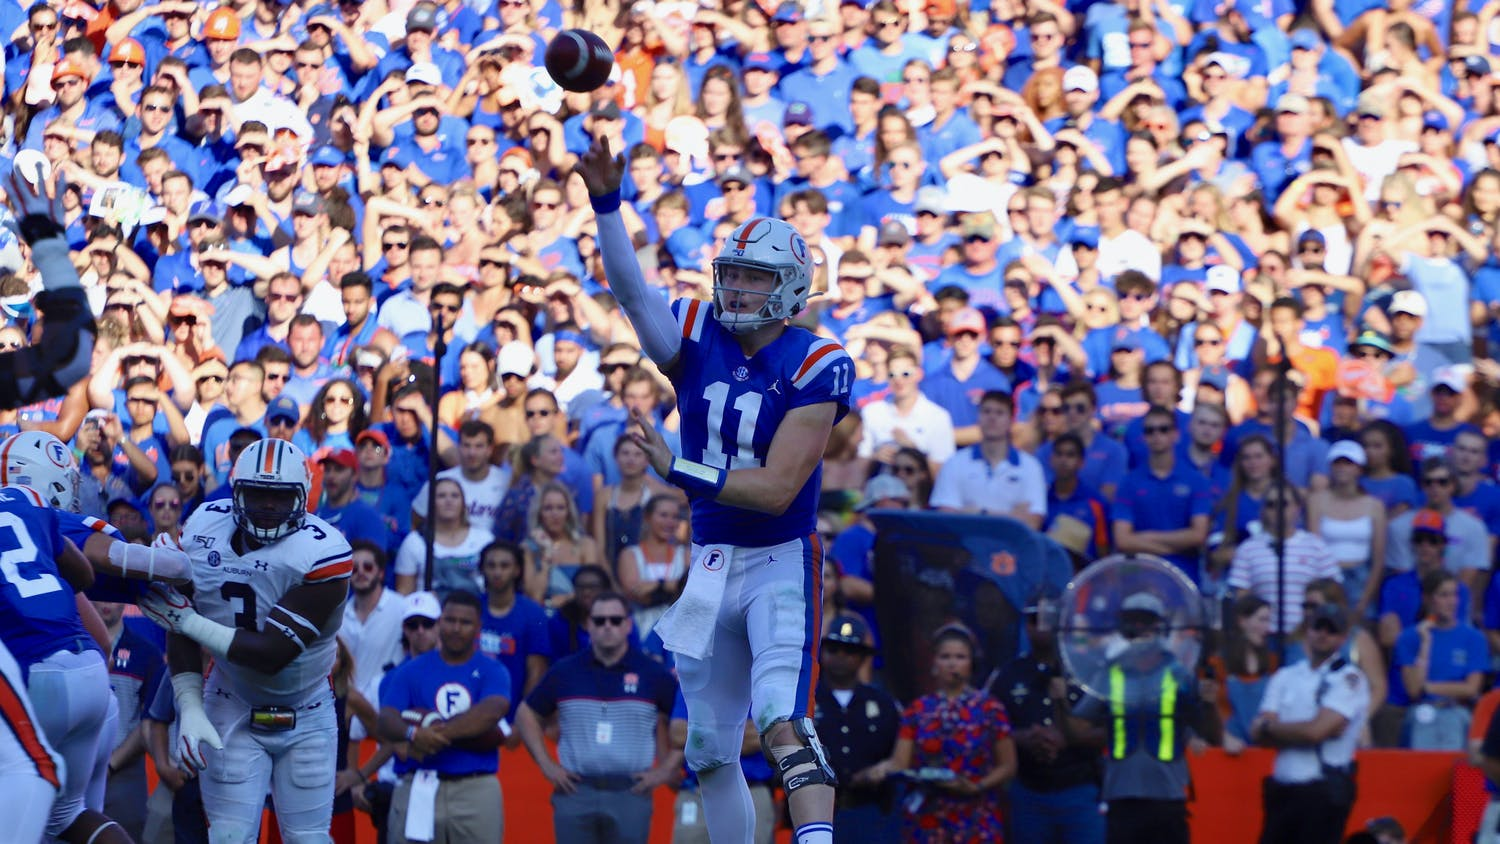 Gators quarterback Kyle Trask, who is a finalist for the Heisman after a record season, declared for the NFL Draft Thursday. Photo from the Florida-Auburn game in October 2019.